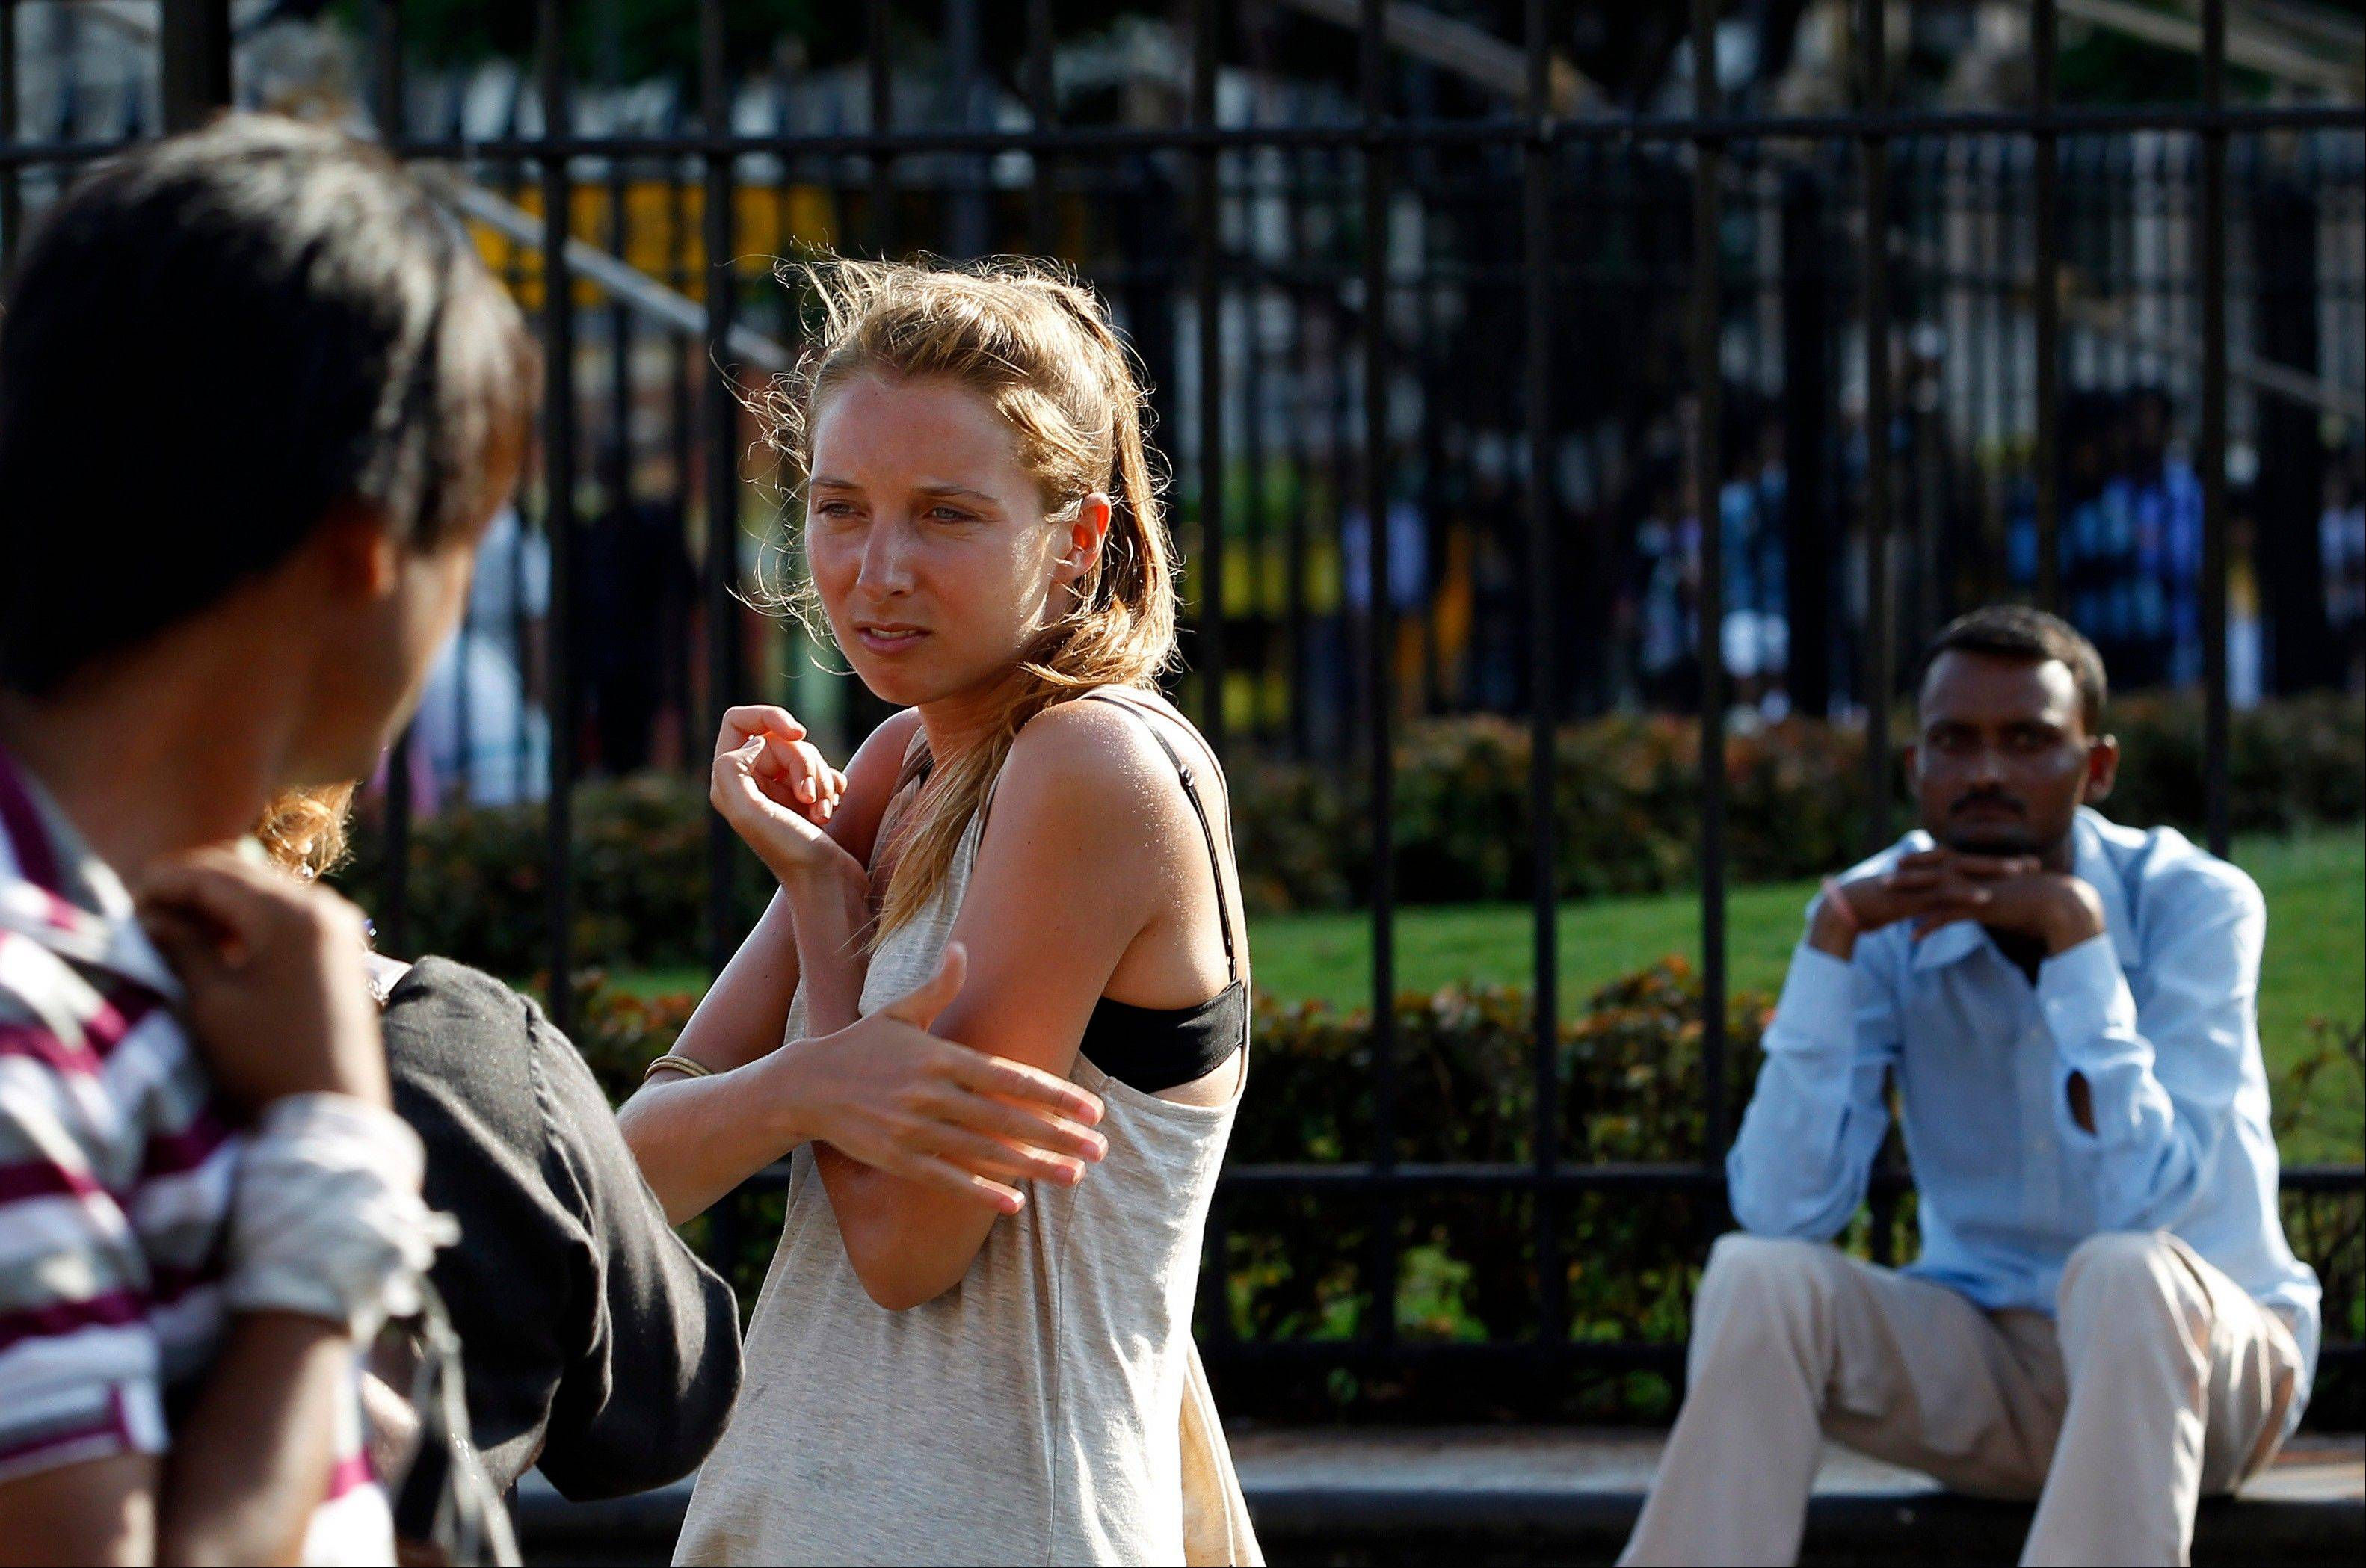 German tourist Carolina De Paola, 22, walks near the landmark Gateway of India in Mumbai, India. A fatal gang rape in New Delhi didn�t deter Germans De Paolo and Canan Wahner from traveling to India for a six-week tour. On a train, a man grabbed De Paolo�s breasts from behind but she never reported the crime, deciding there would be no point. Violence against women, and the huge publicity generated by recent attacks here, is threatening India�s $17.7 billion tourism industry with a new study showing tourism has plunged.